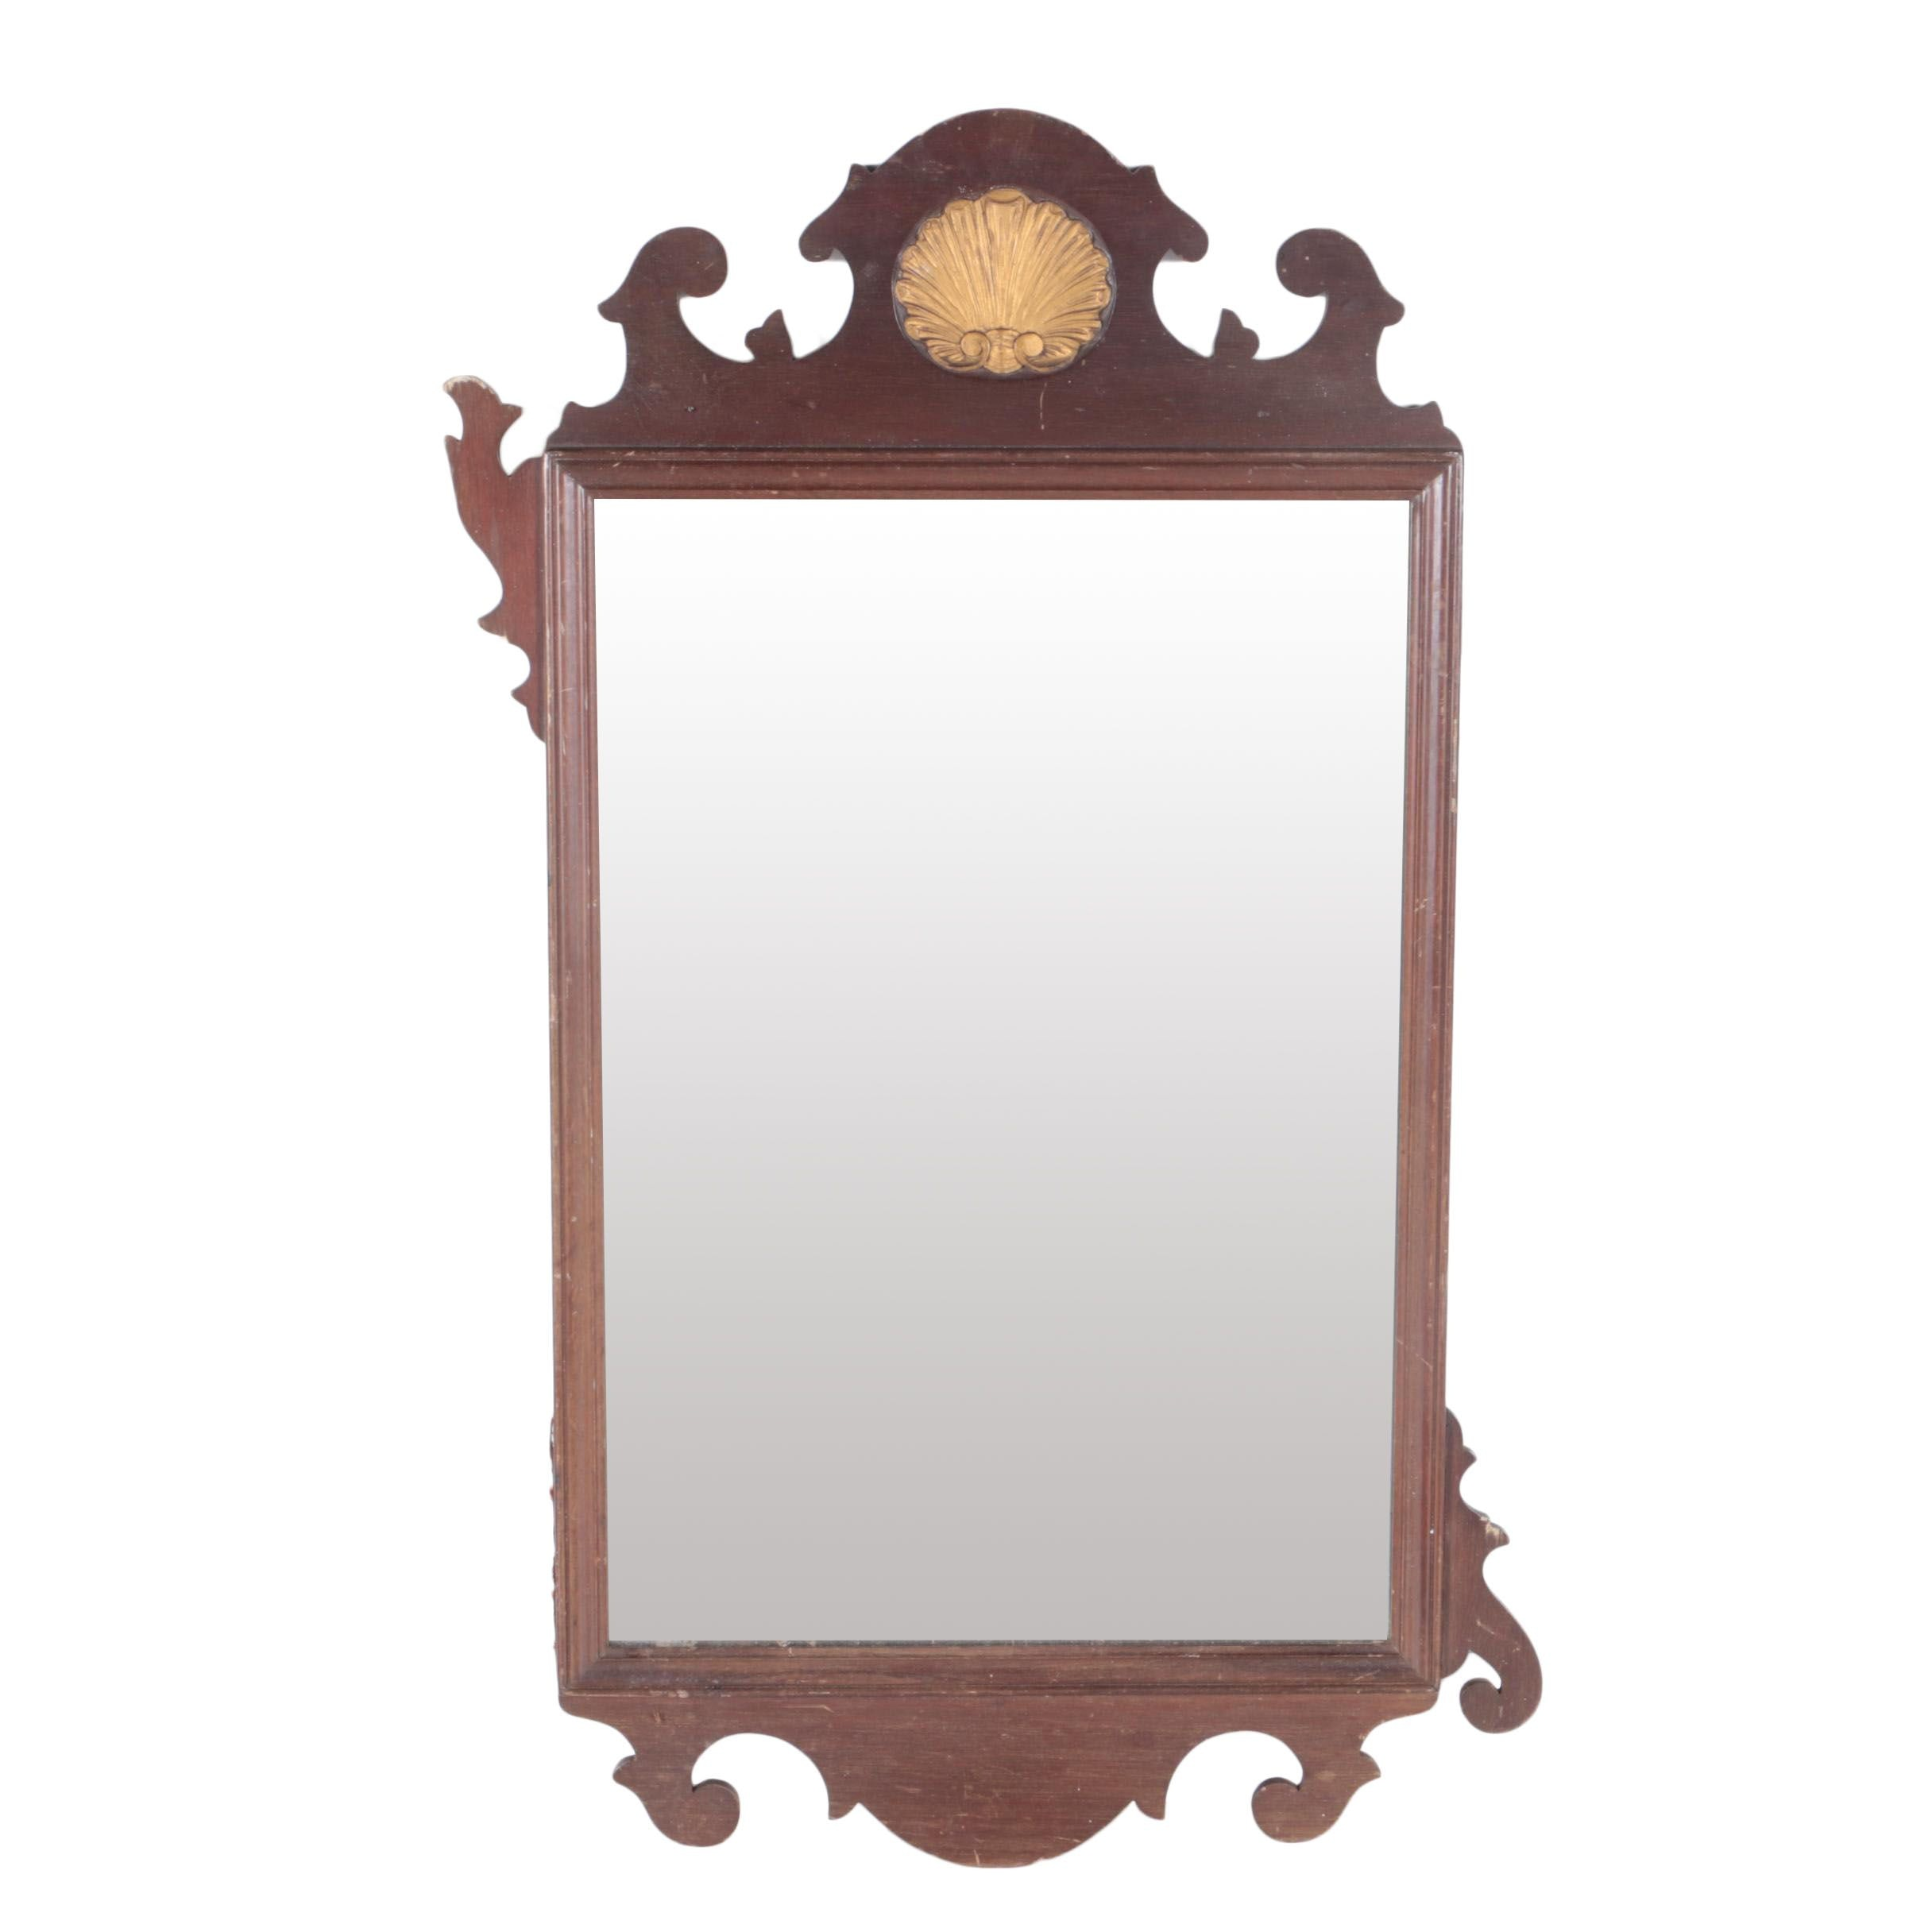 Chippendale Style Wood Framed Wall Mirror